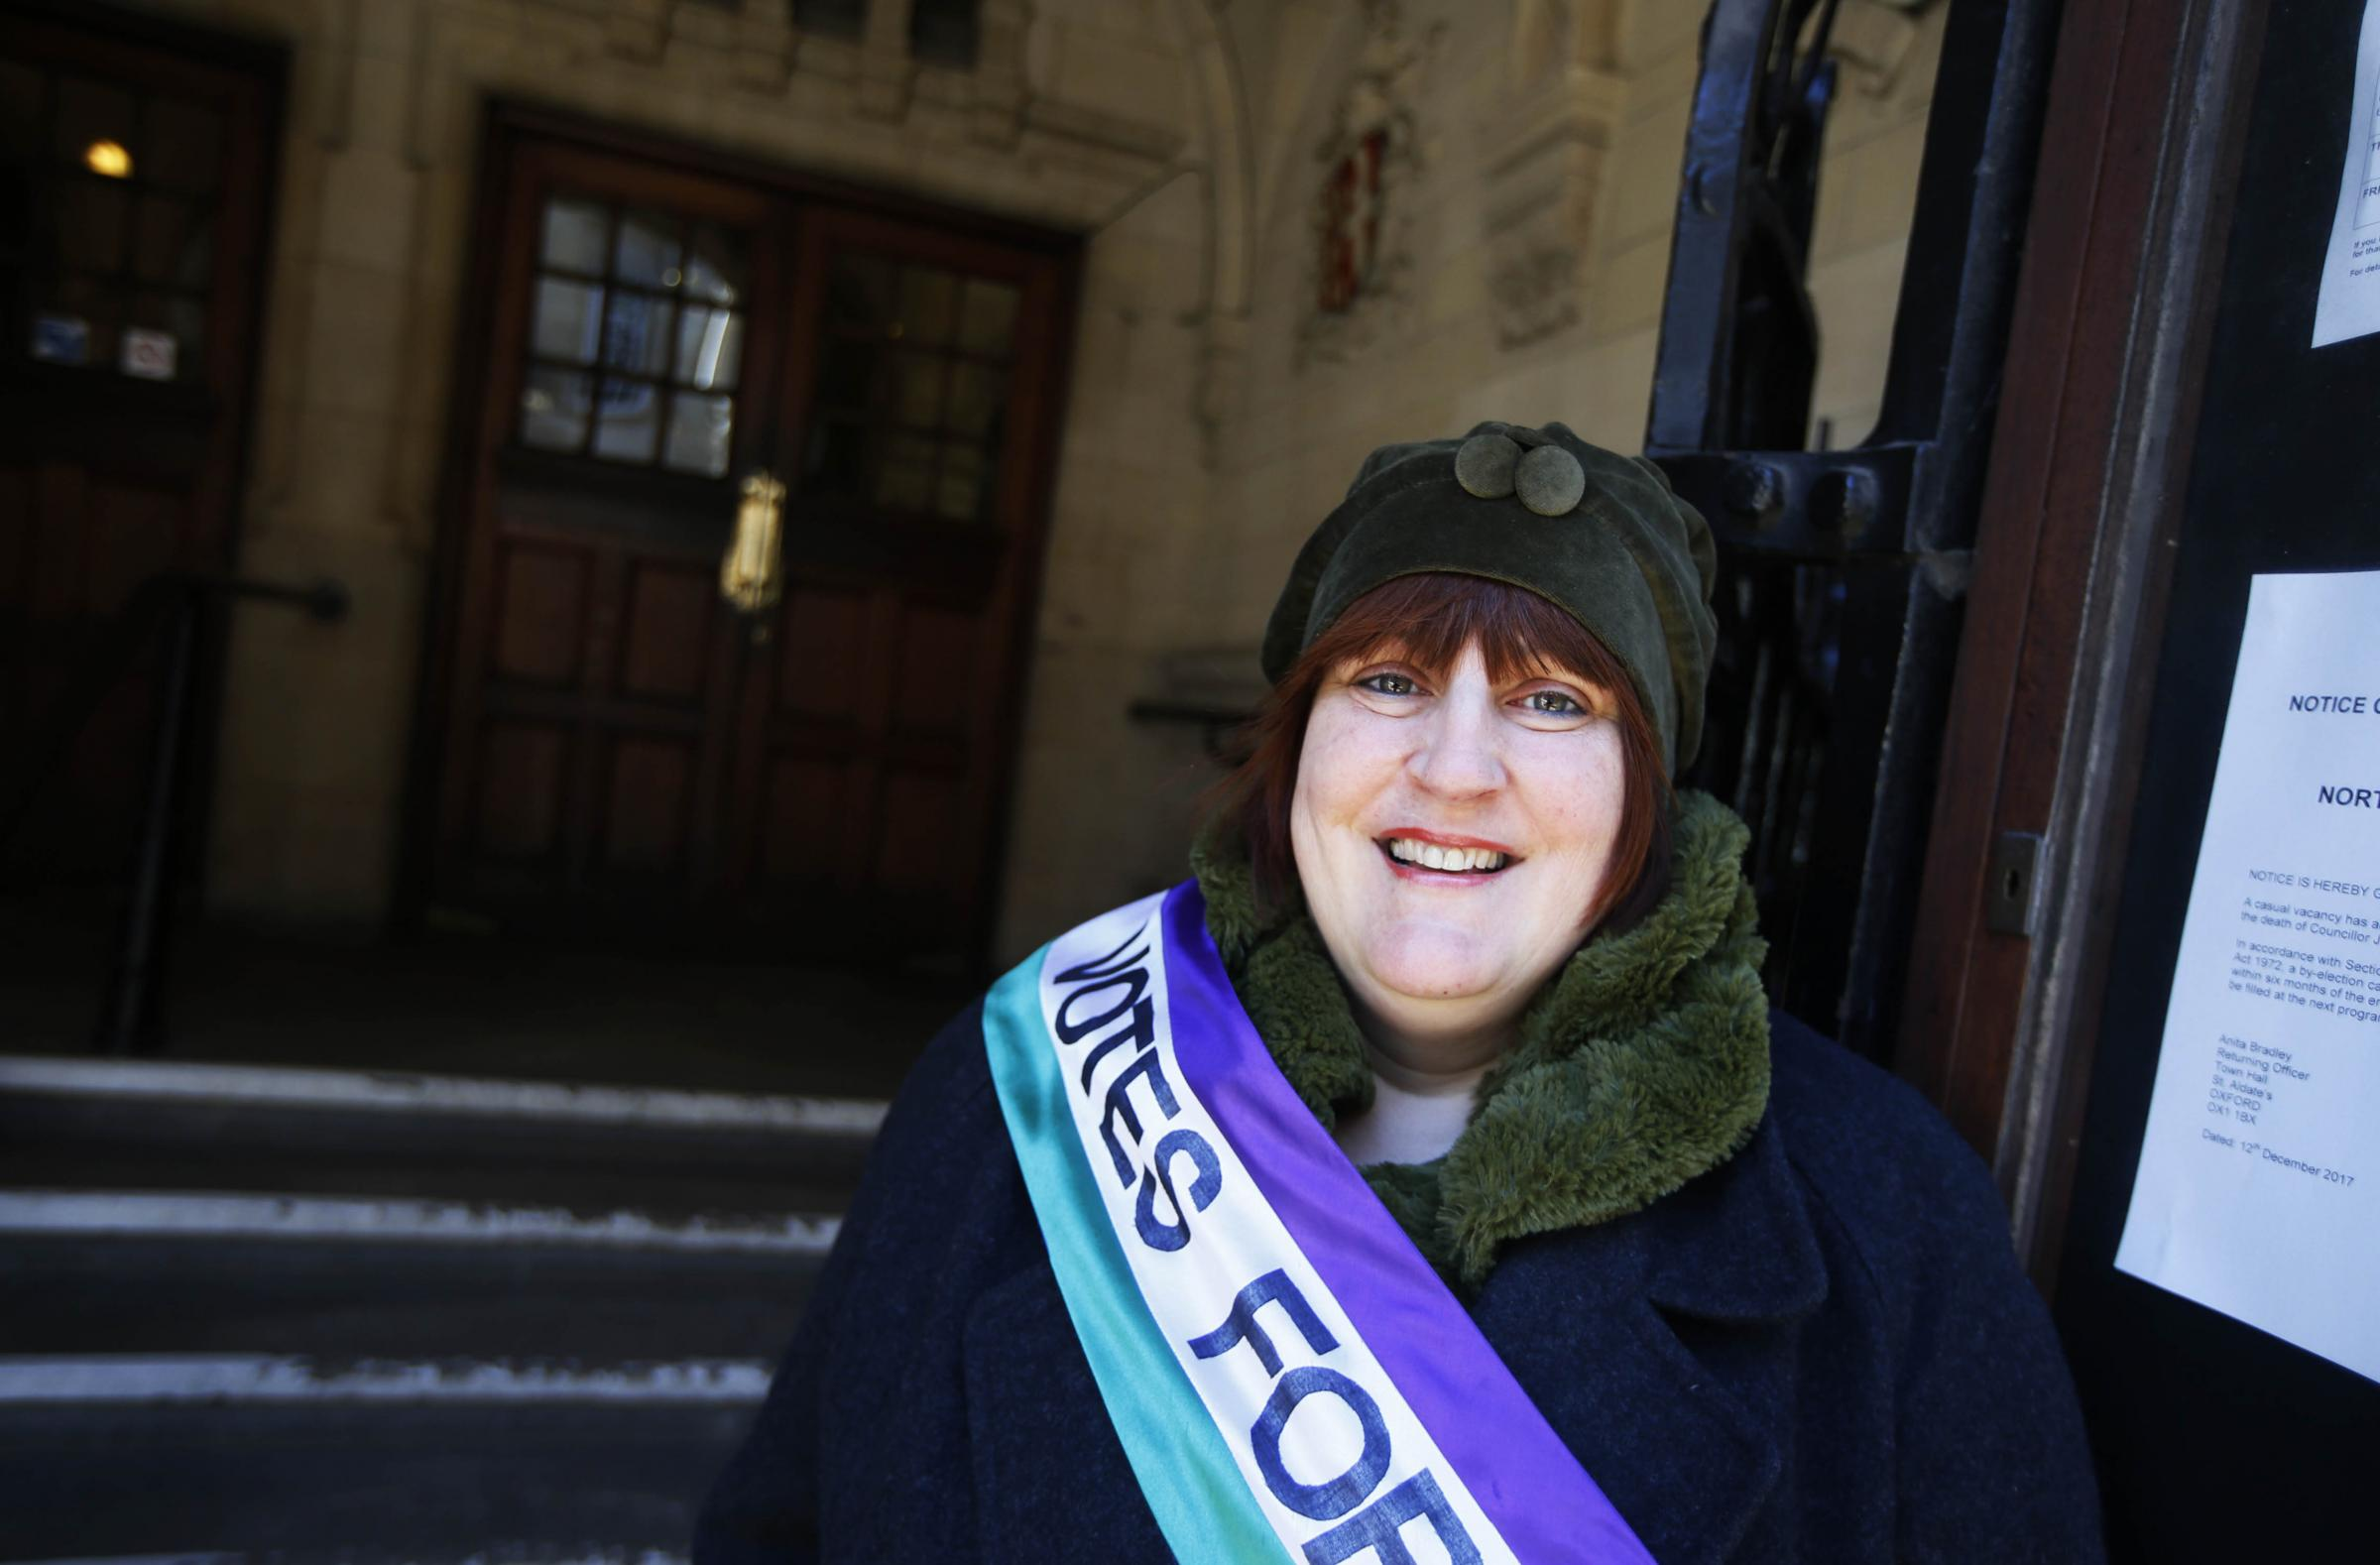 KEEPING SUFFRAGETTE SPIRIT ALIVE: Tracy Walsh is among the activists who has been included in Amnesty International's new map, which includes about 250 women